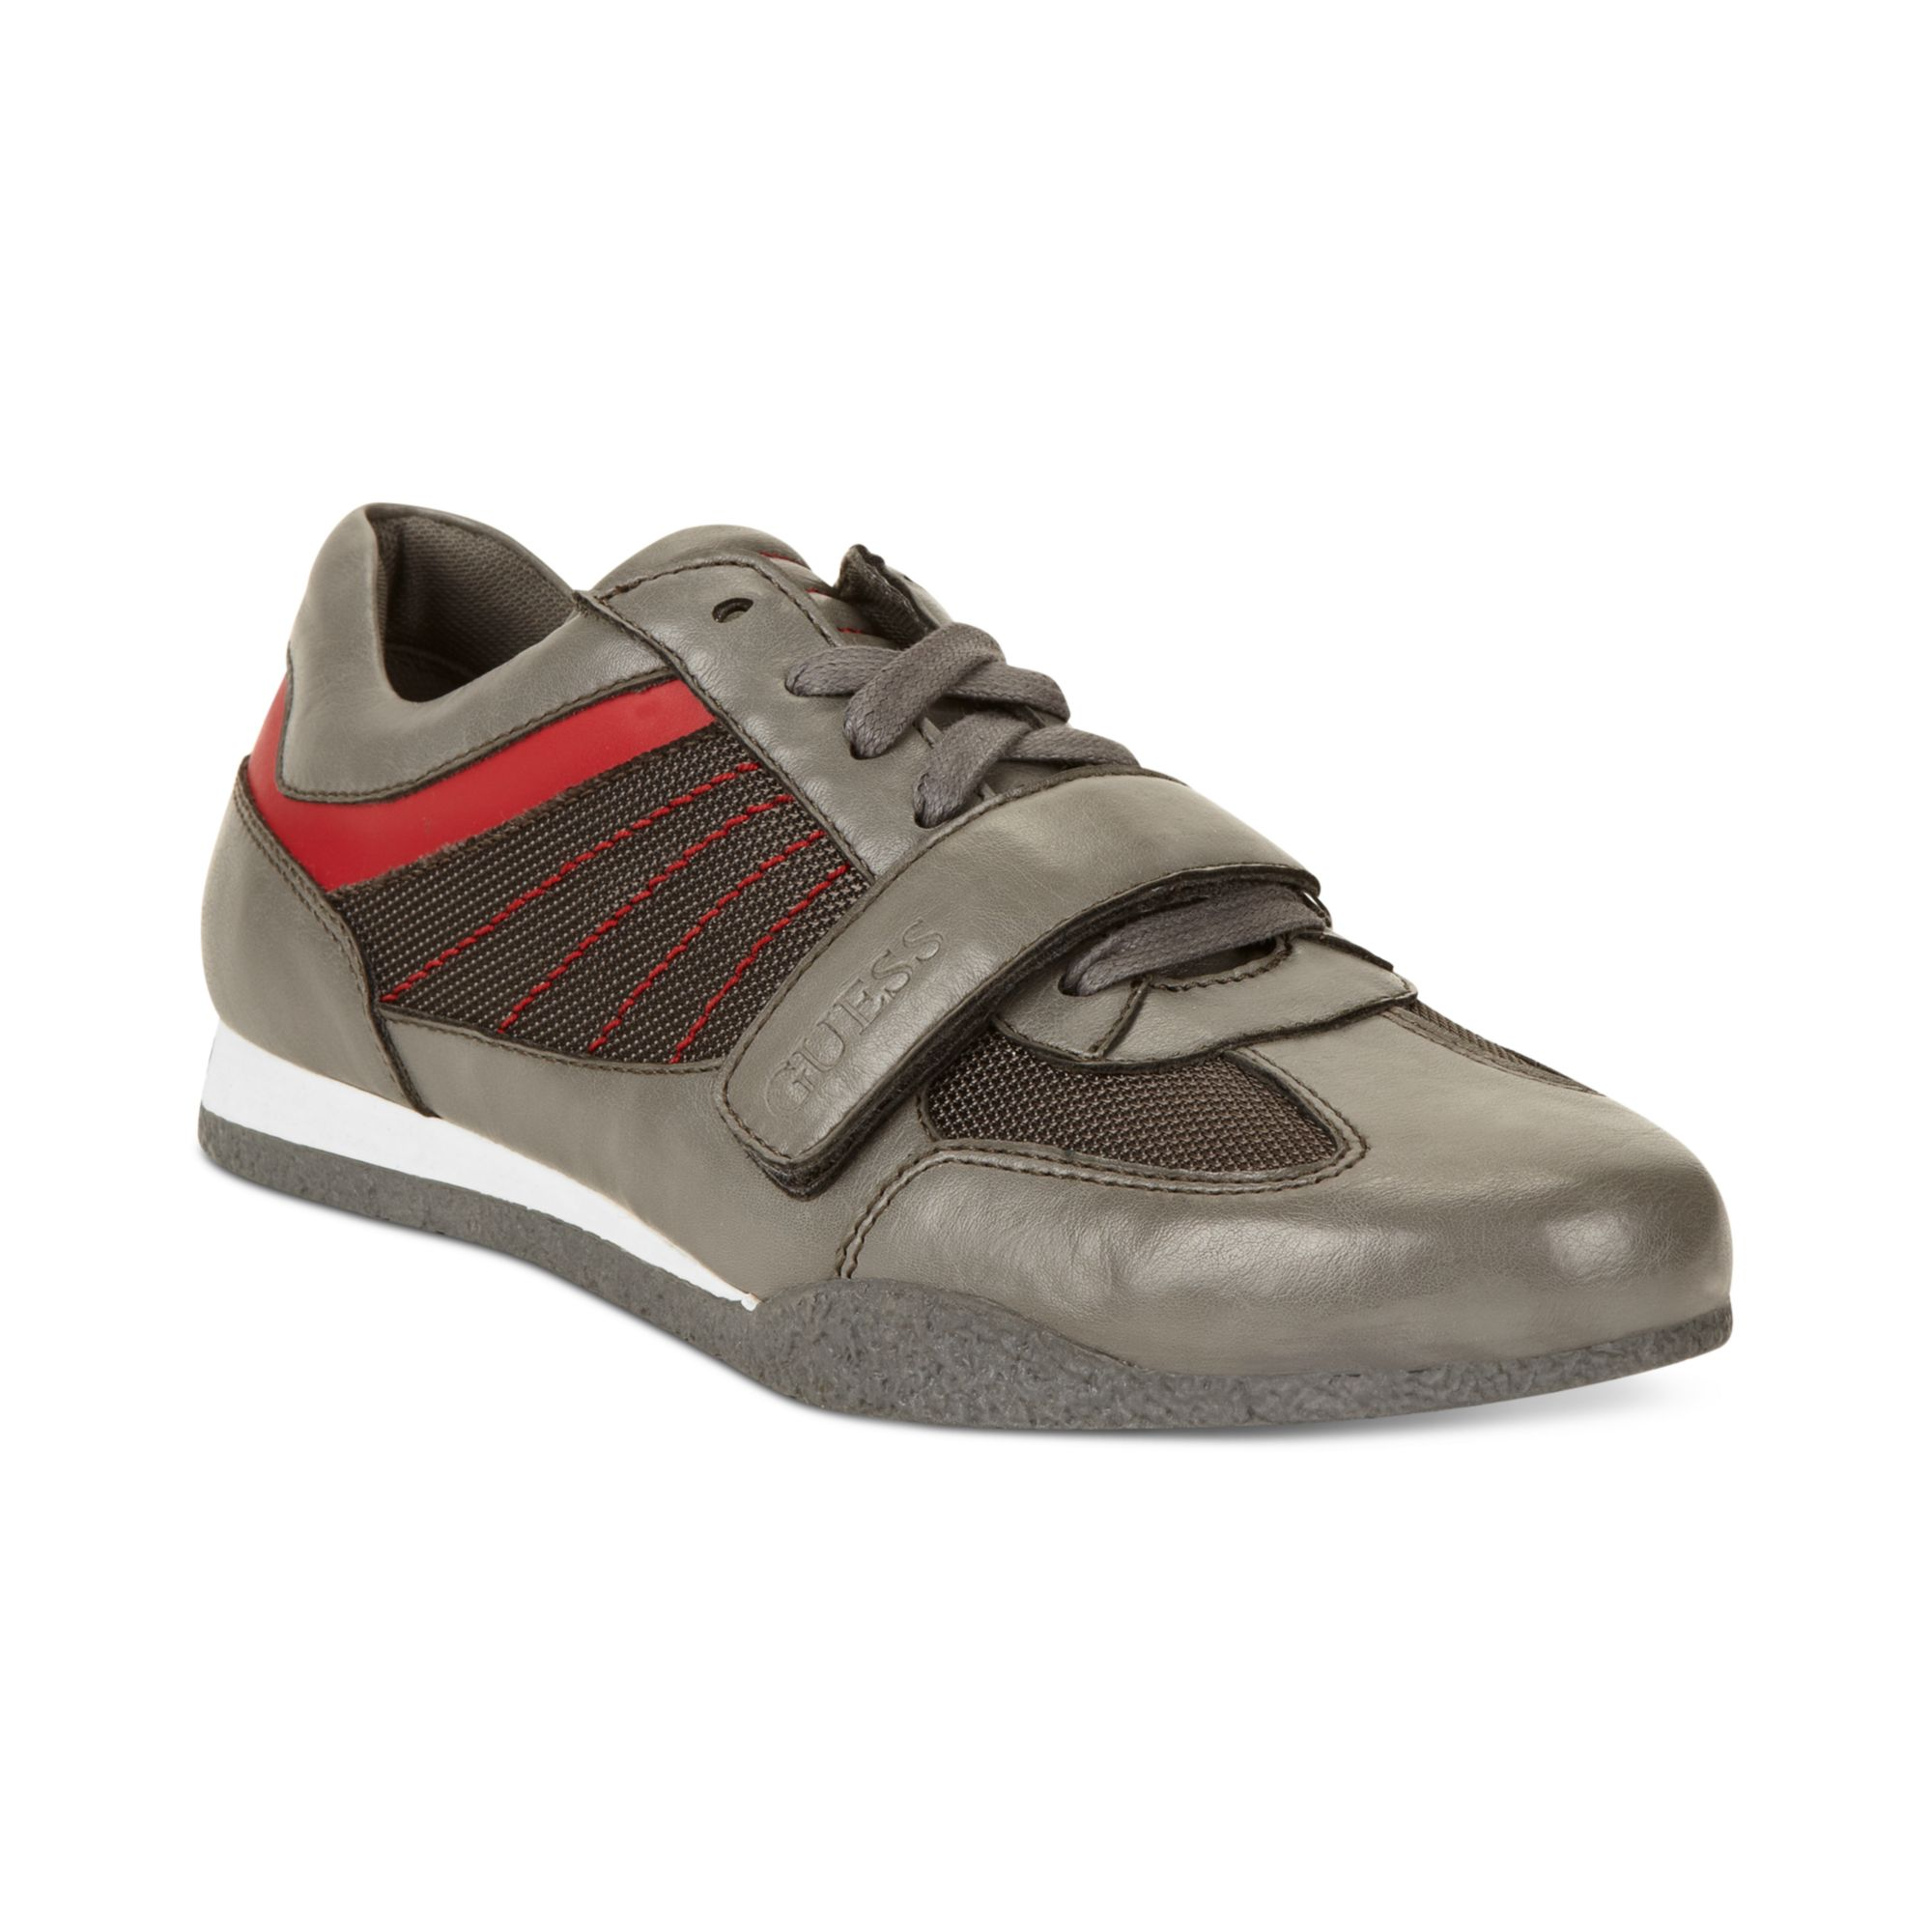 Lyst - Guess Mens Shoes Arko3 Sneakers in Gray for Men